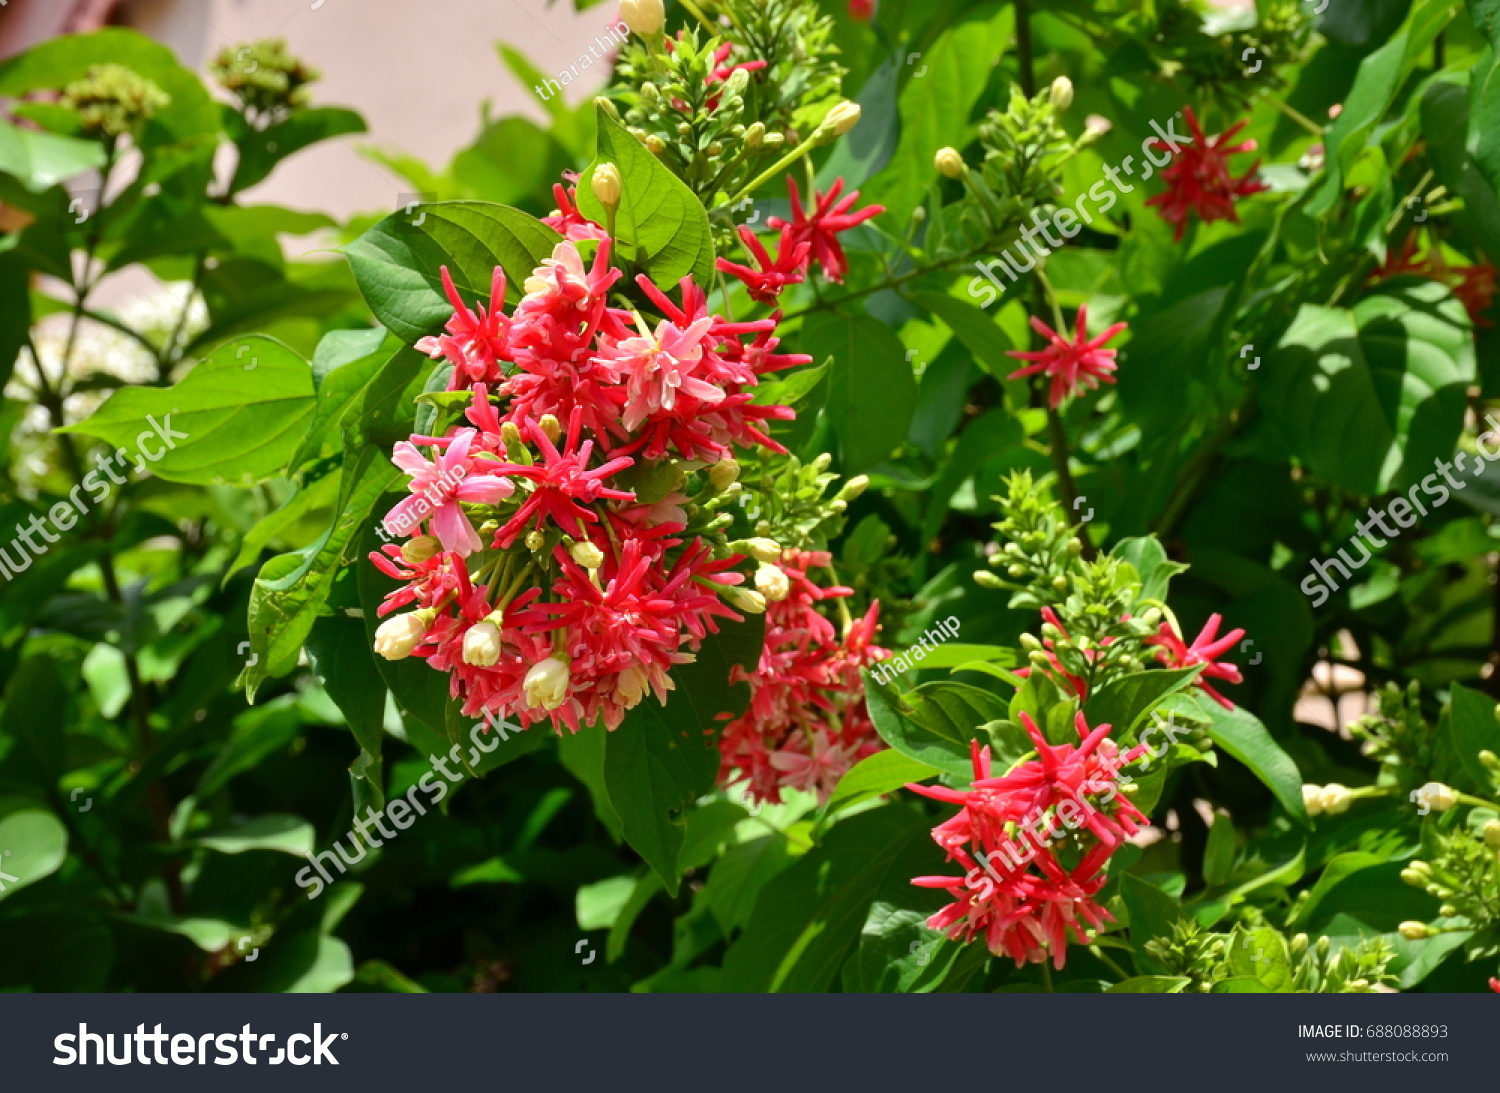 Bushes Pink Flowers Green Leavesbackground Image Stock Photo